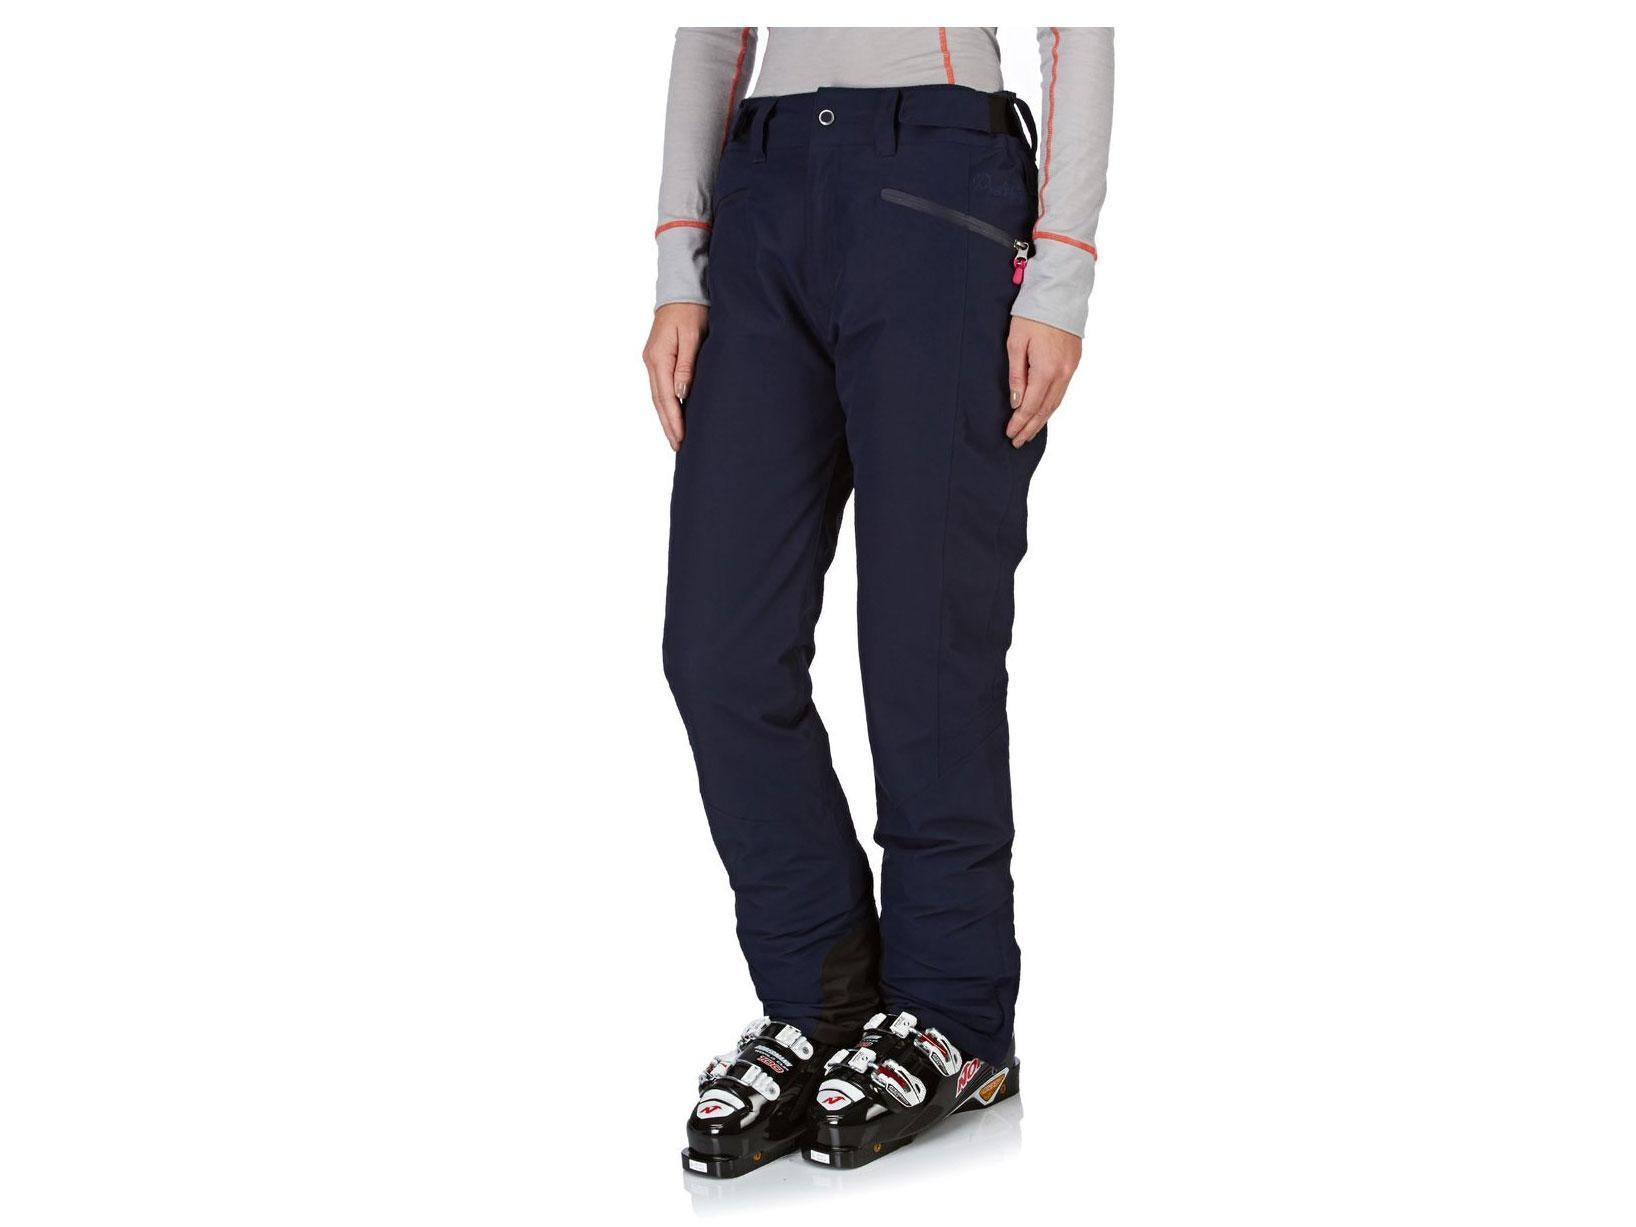 10 Best Womens Ski Pants 2018 2019 The Independent Winter Kensington Cleverly Snaps Together With Protests Jackets To Make An Instant Snowsuit Our Tester Liked High Comfortable Waist